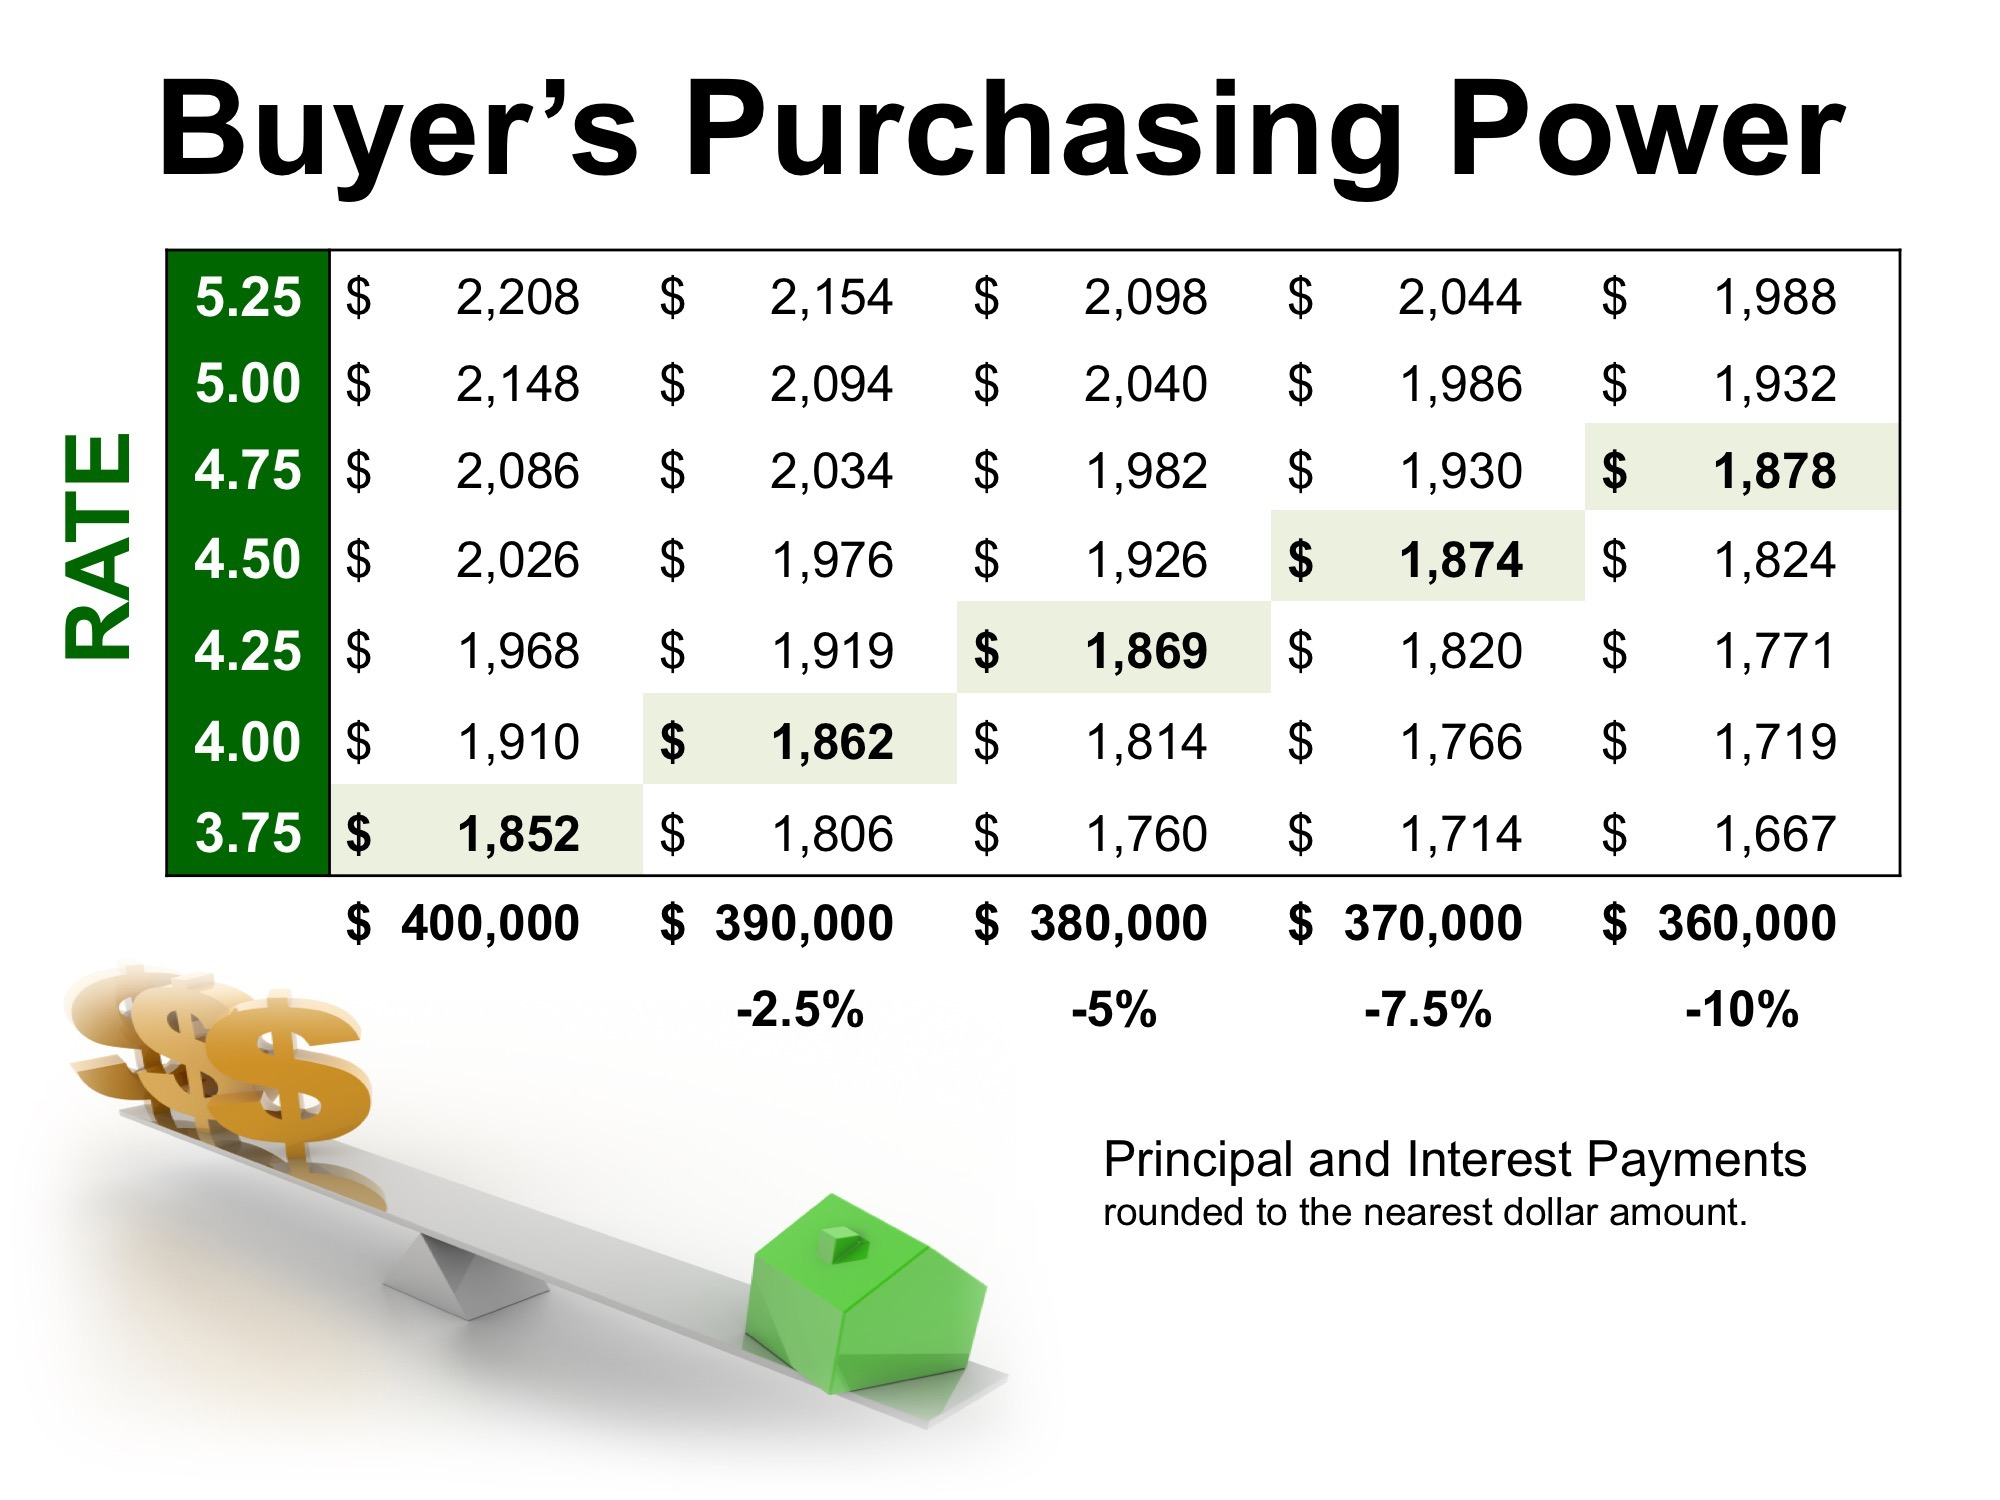 What's Your Purchasing Power? Buyers have Power too!